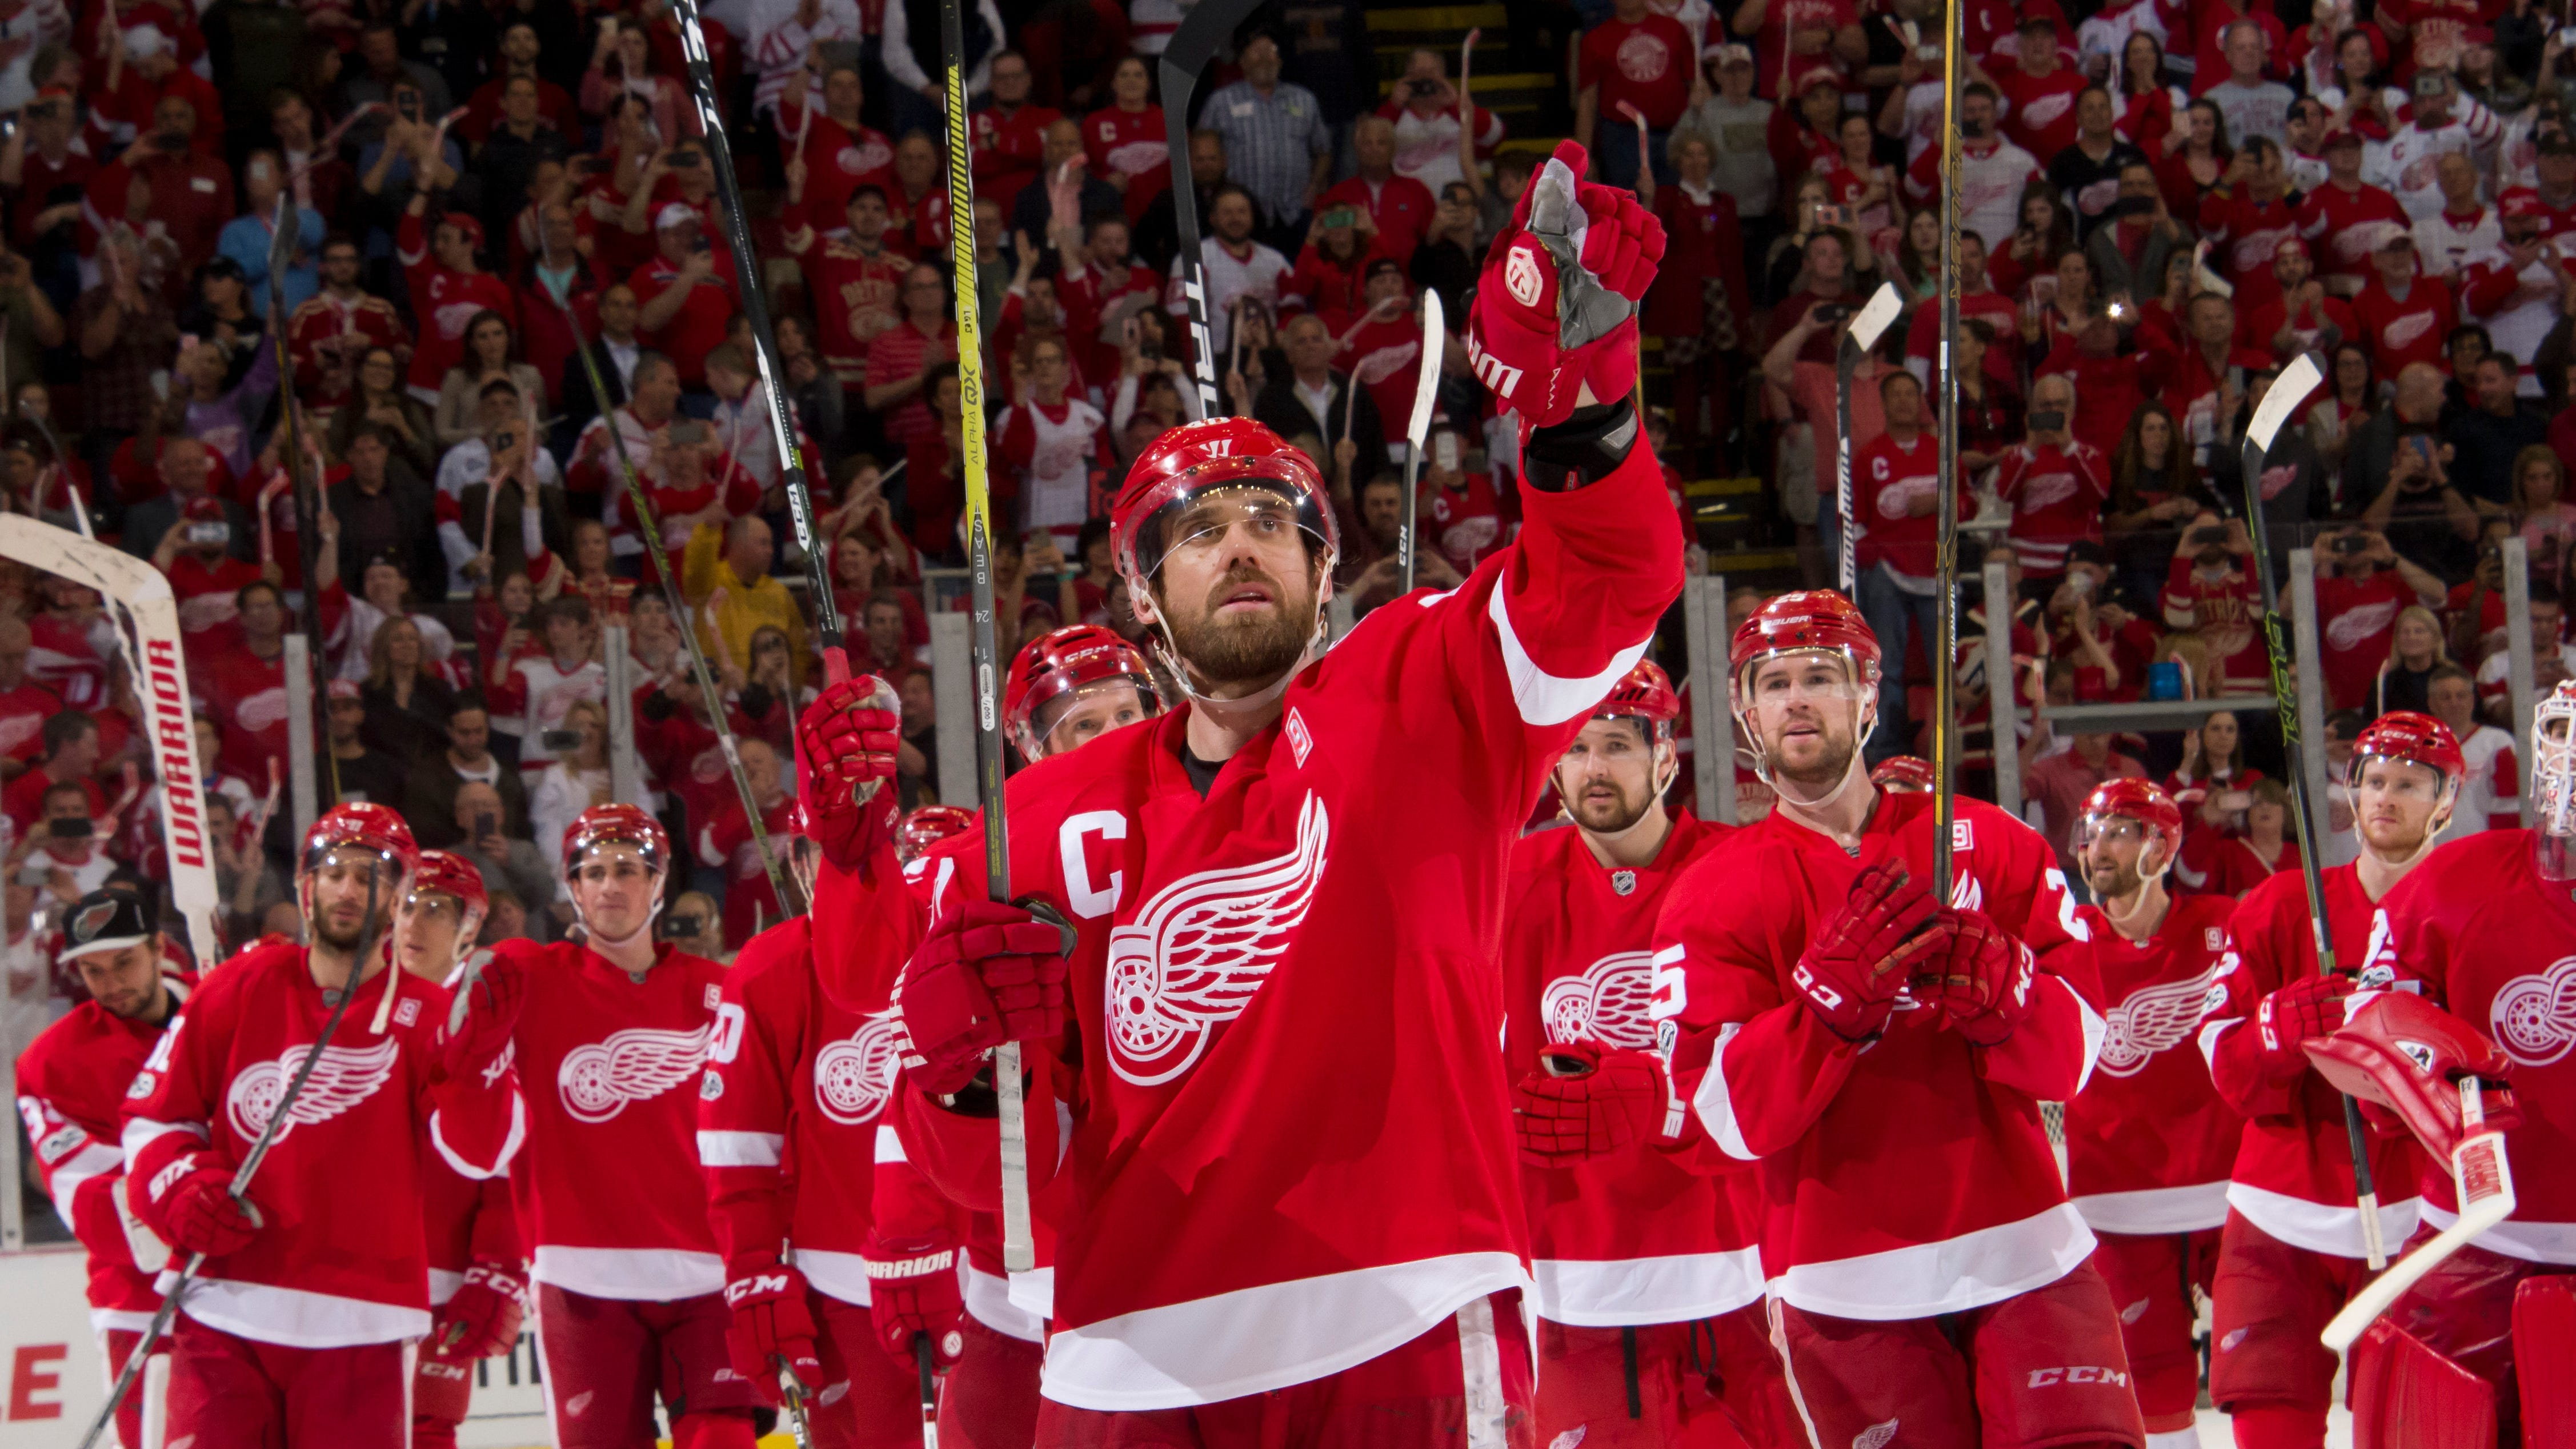 Wojo: Zetterberg led to the end, finally beaten by pain and time